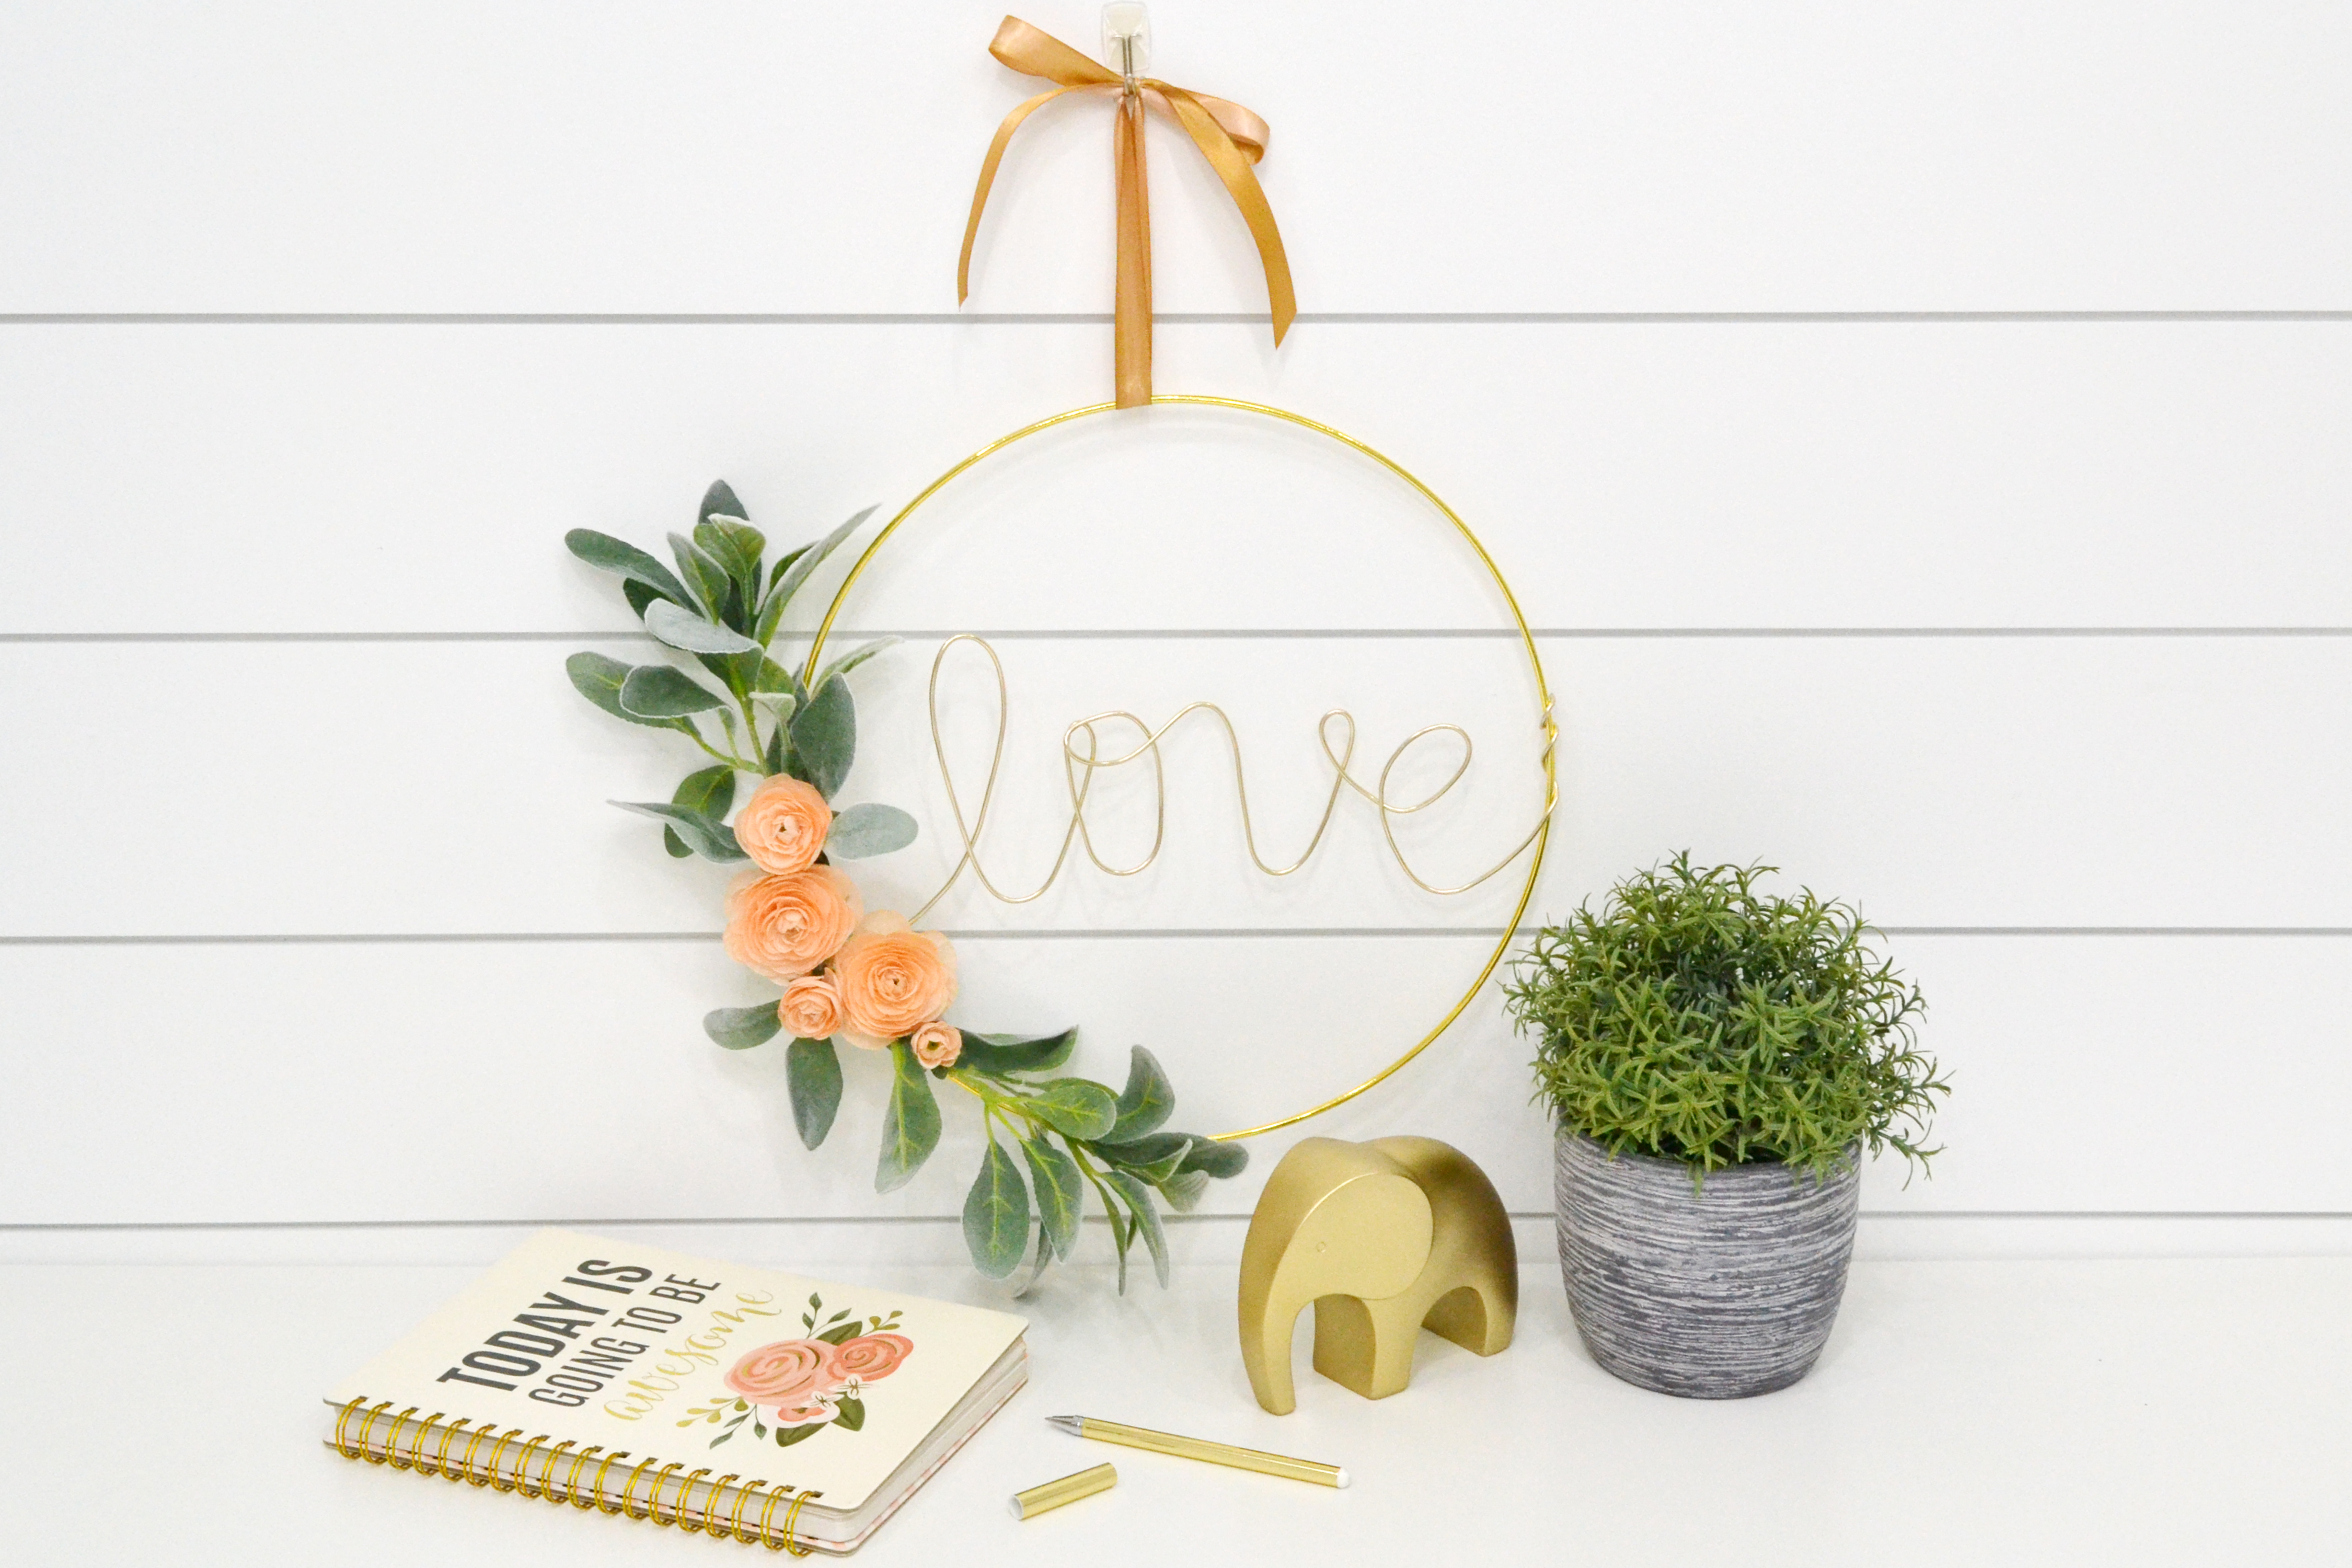 Big Happy Jig Hoop Wreath by Aly Dosdall for We R Memory Keepers